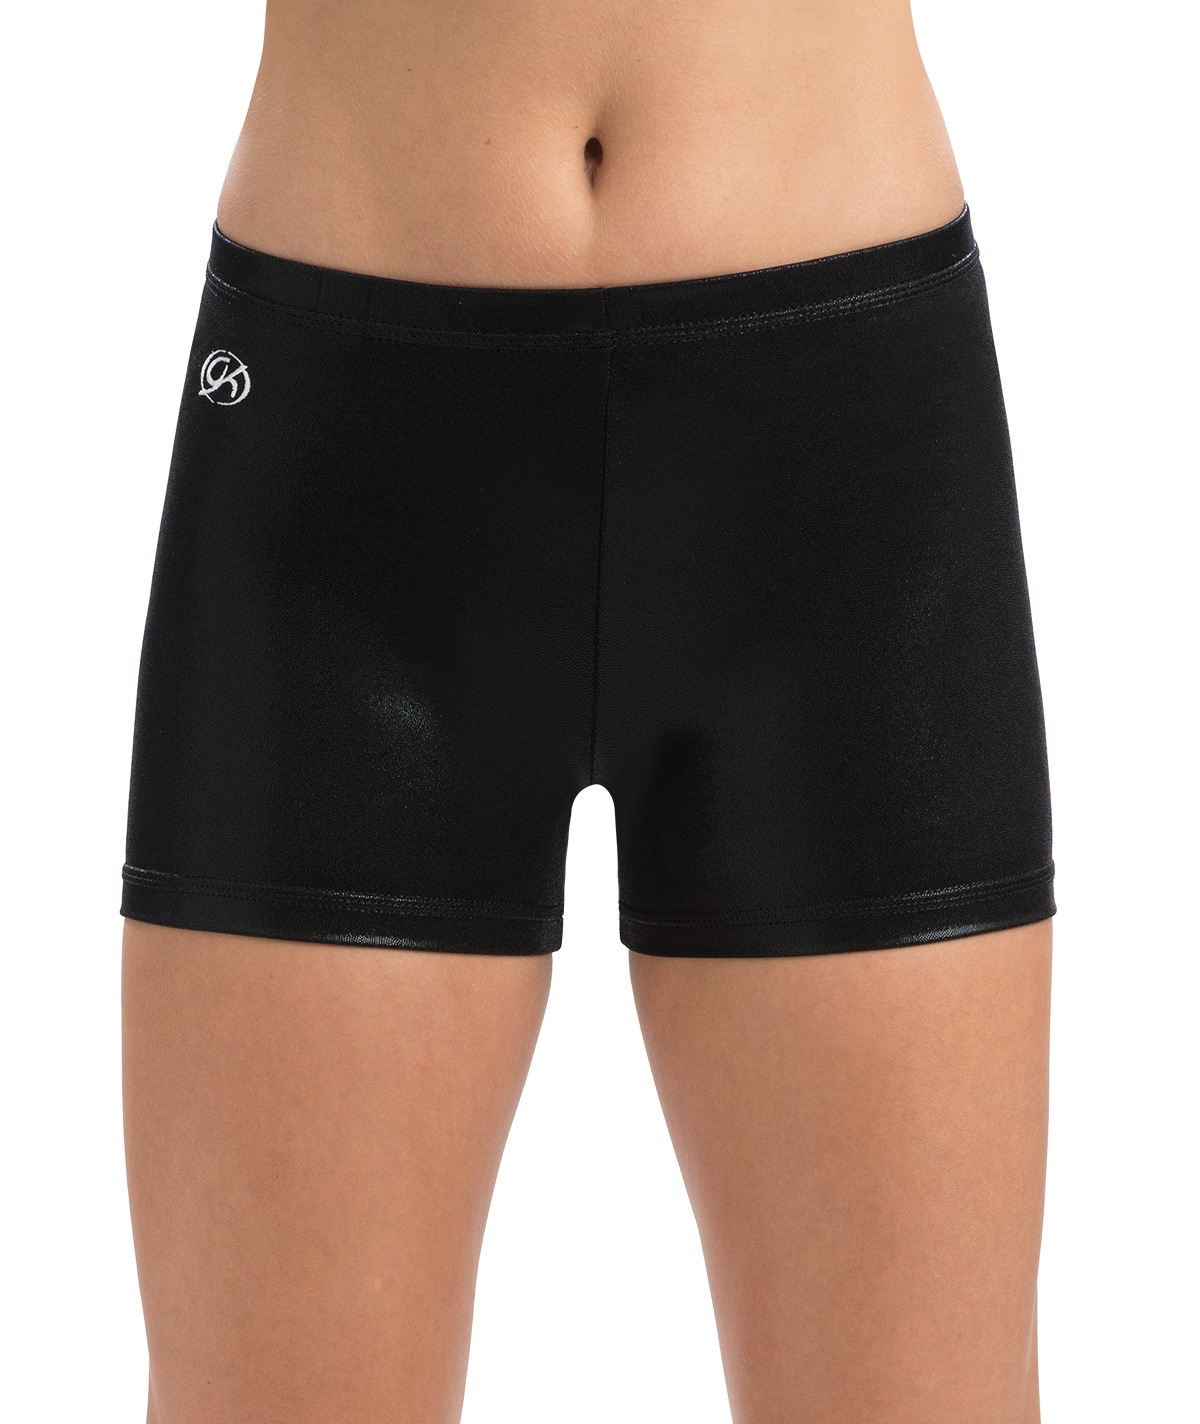 GK All Star Mystique Workout Shorts